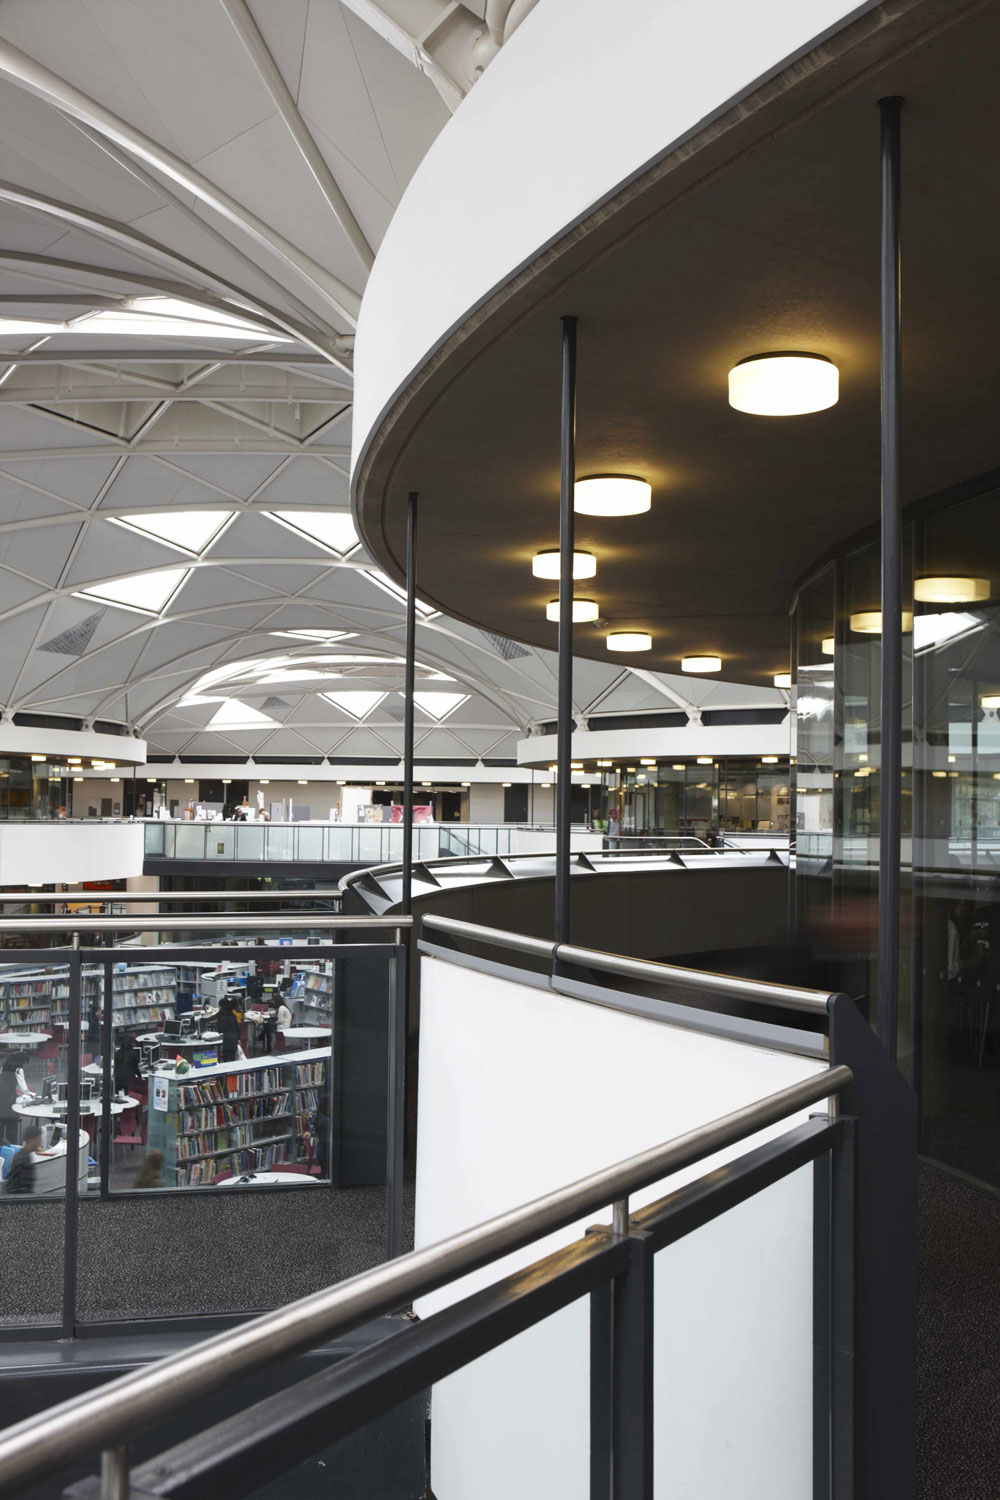 Thomas Deacon Academy curved elevated walkways and classrooms, Peterborough | Interior Photographers